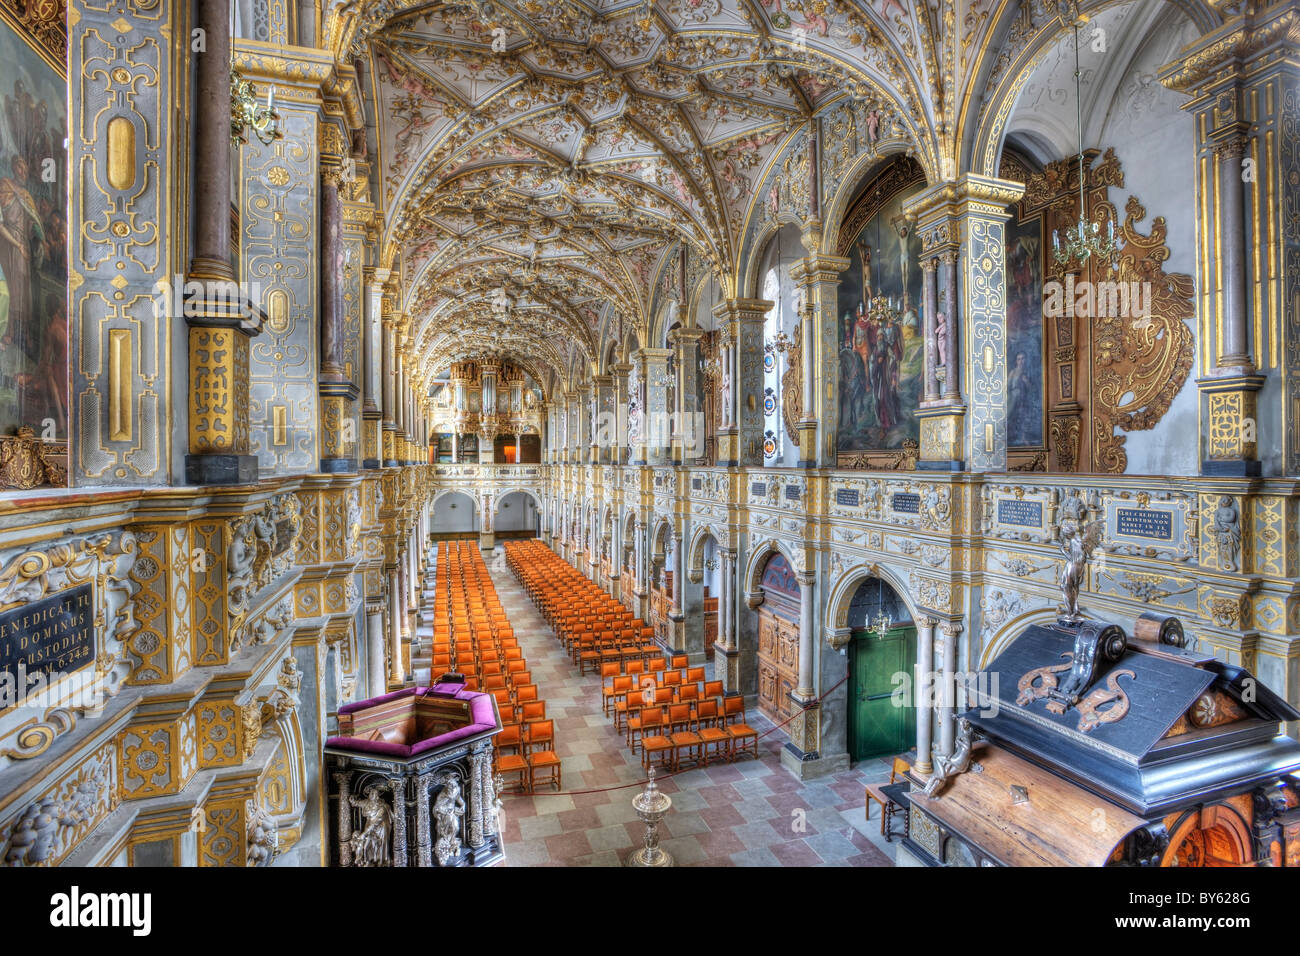 The museum of national history at frederiksborg castle copenhagen - Stock Photo The Chapel At Frederiksborg Castle In Denmark